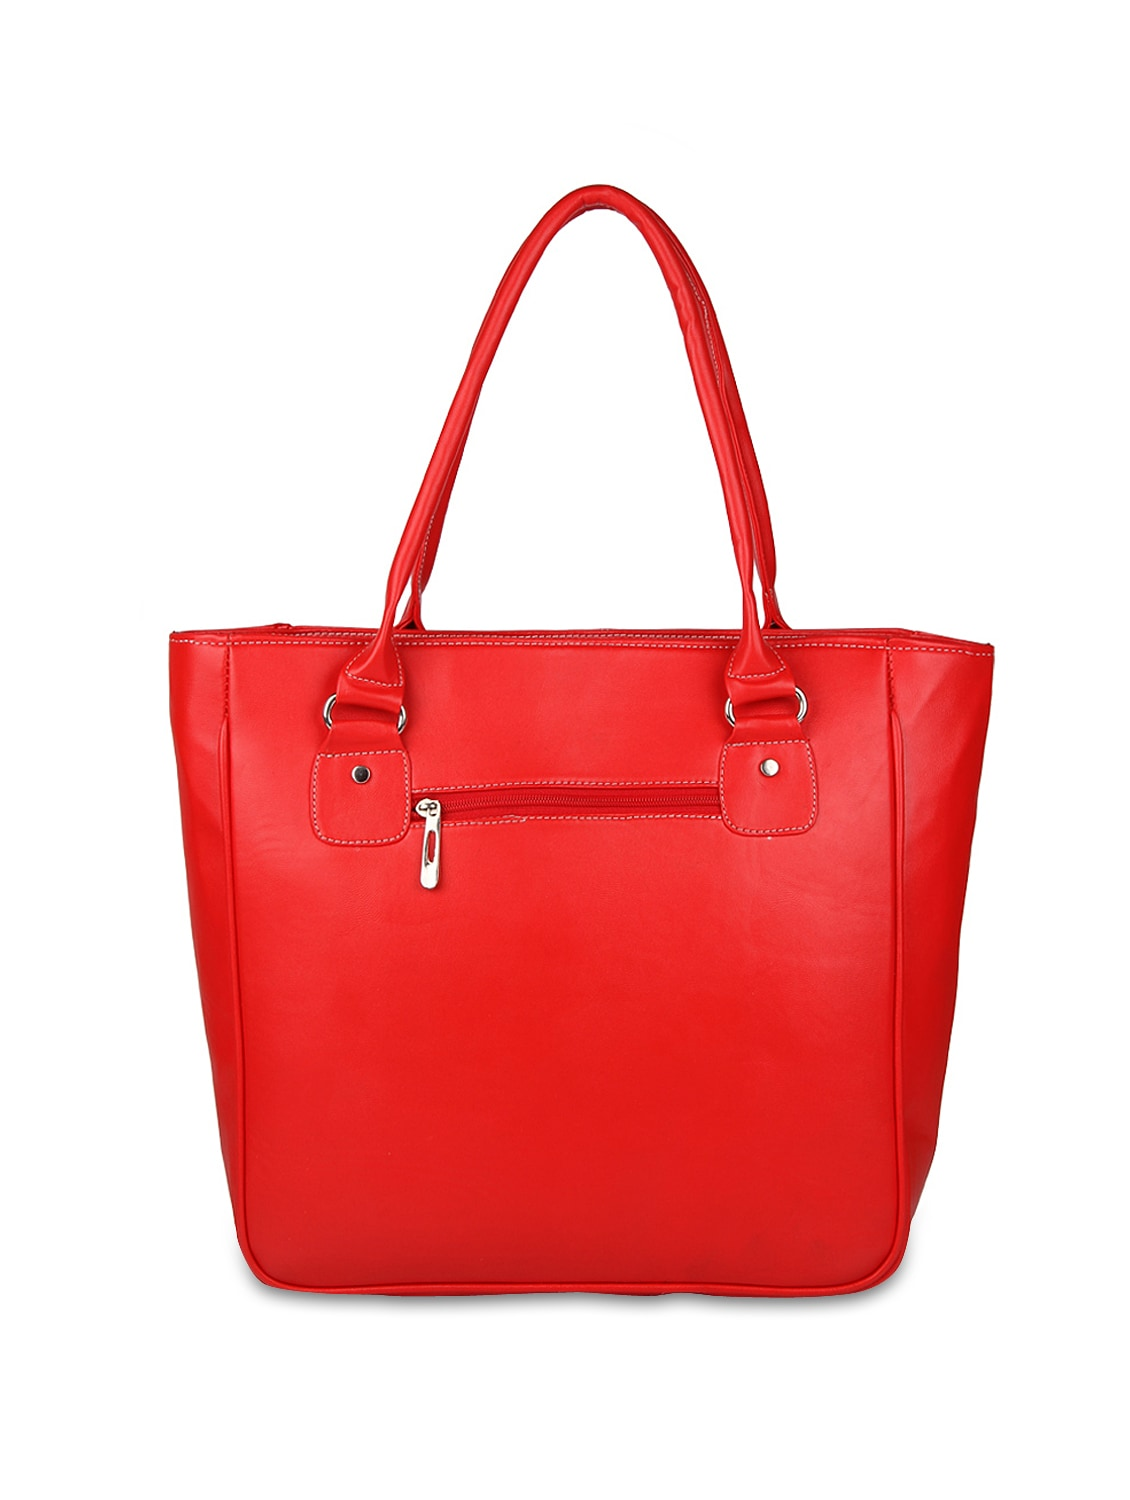 Red Oversized Carry All Handbag By Alessia Online Ping For Handbags In India 6766